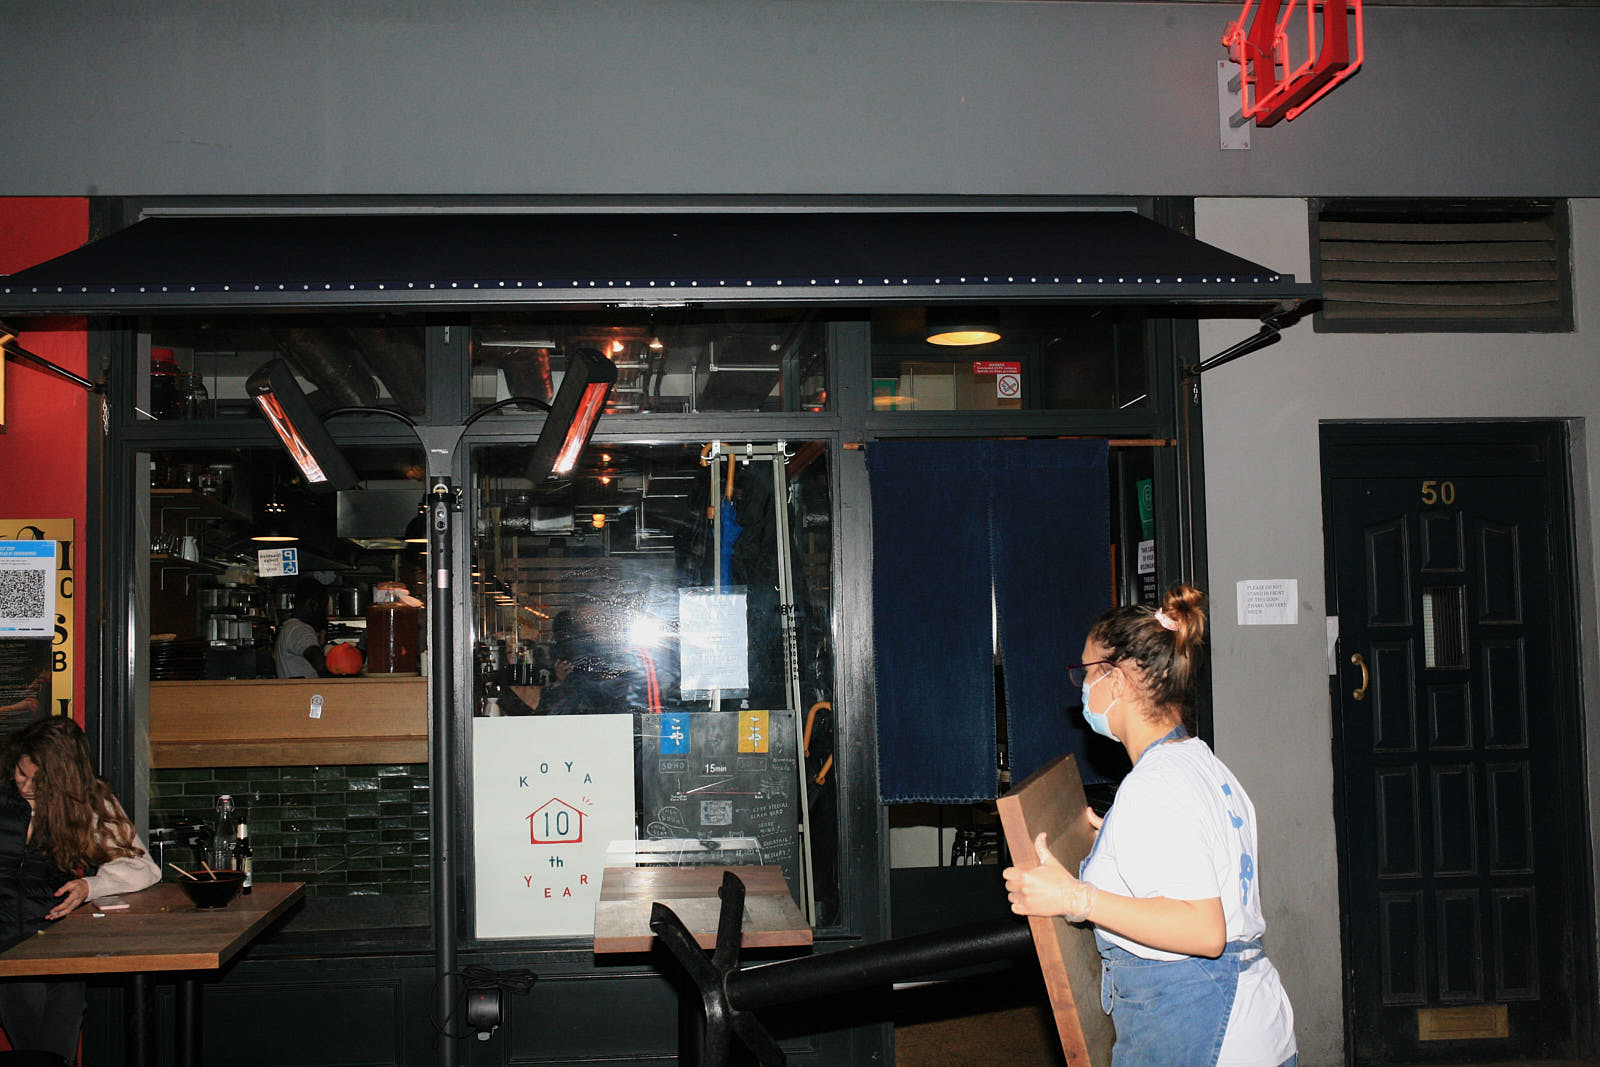 Koya on Frith street in soho prepares to close before England goes into lockdown to prevent the transmission of COVID-19